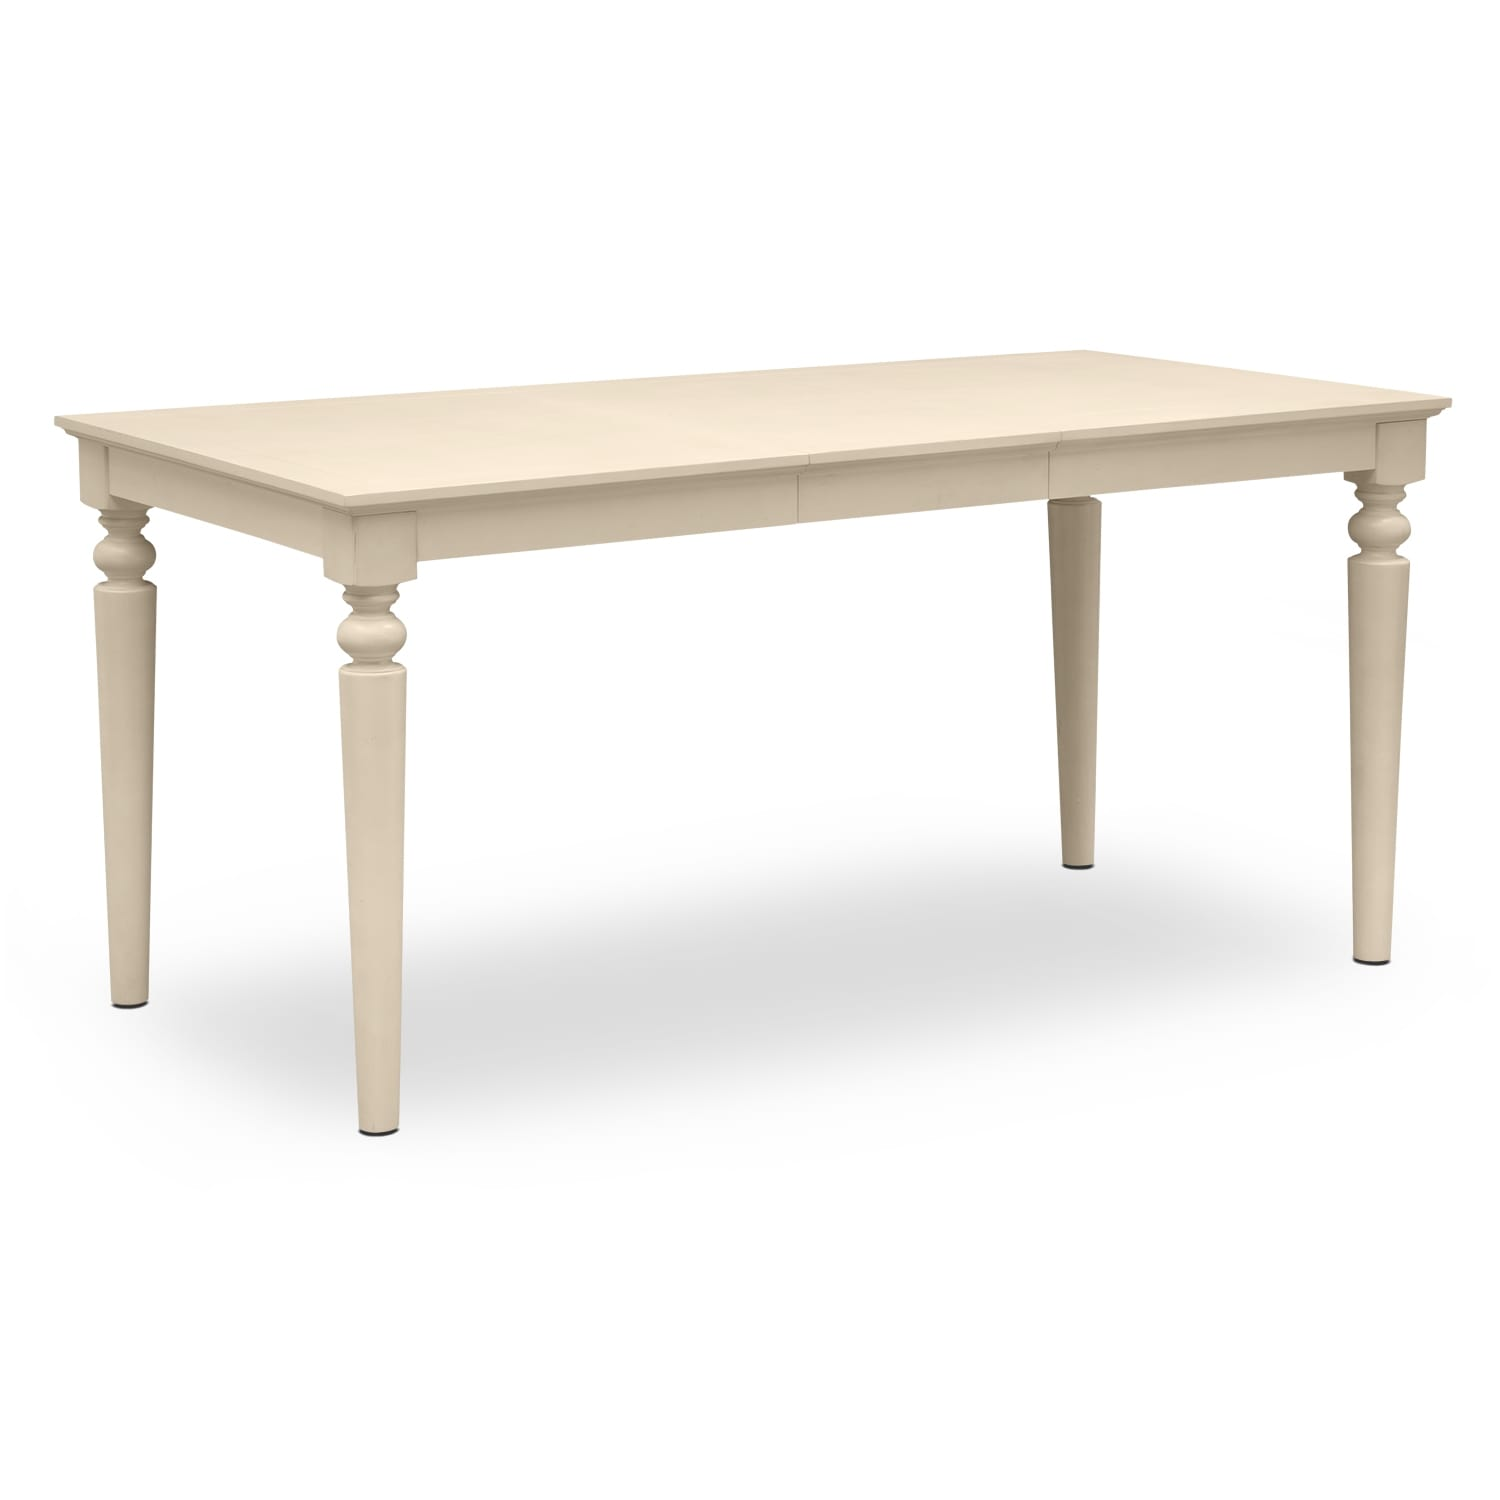 Carnival white ii dining room counter height table value city furniture - Height dining room table ...